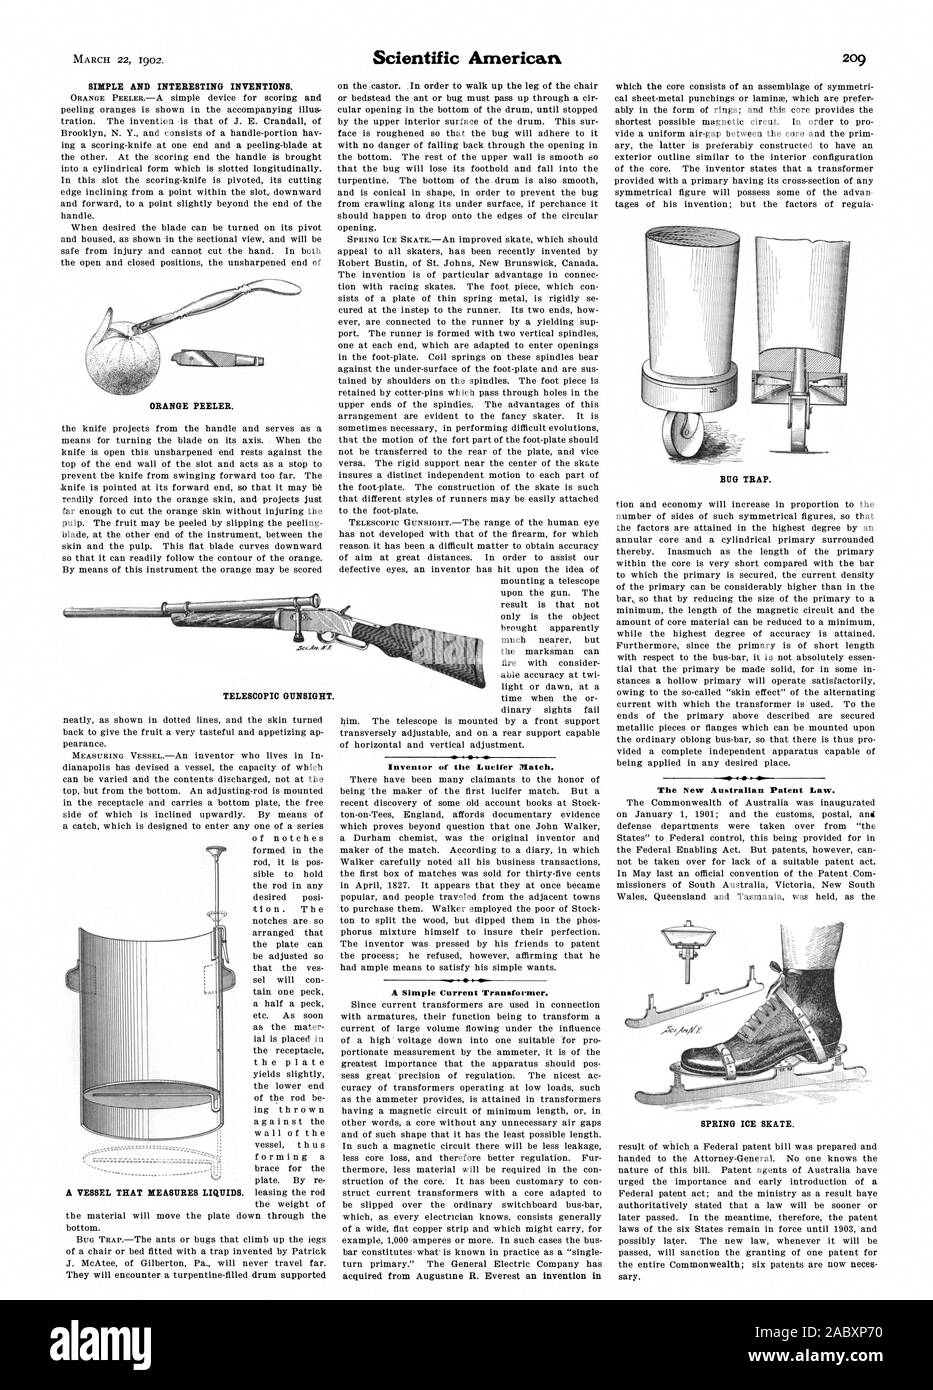 SIMPLE AND INTERESTING INVENTIONS. ORANGE PEELER. Inventor of the Lucifer Hatch. A Simple Current Transformer. BUG TRAP. The New Australian Patent Law. SPRING ICE SKATE. TELESCOPIC GUNSIGHT., scientific american, 1902-03-22 Stock Photo